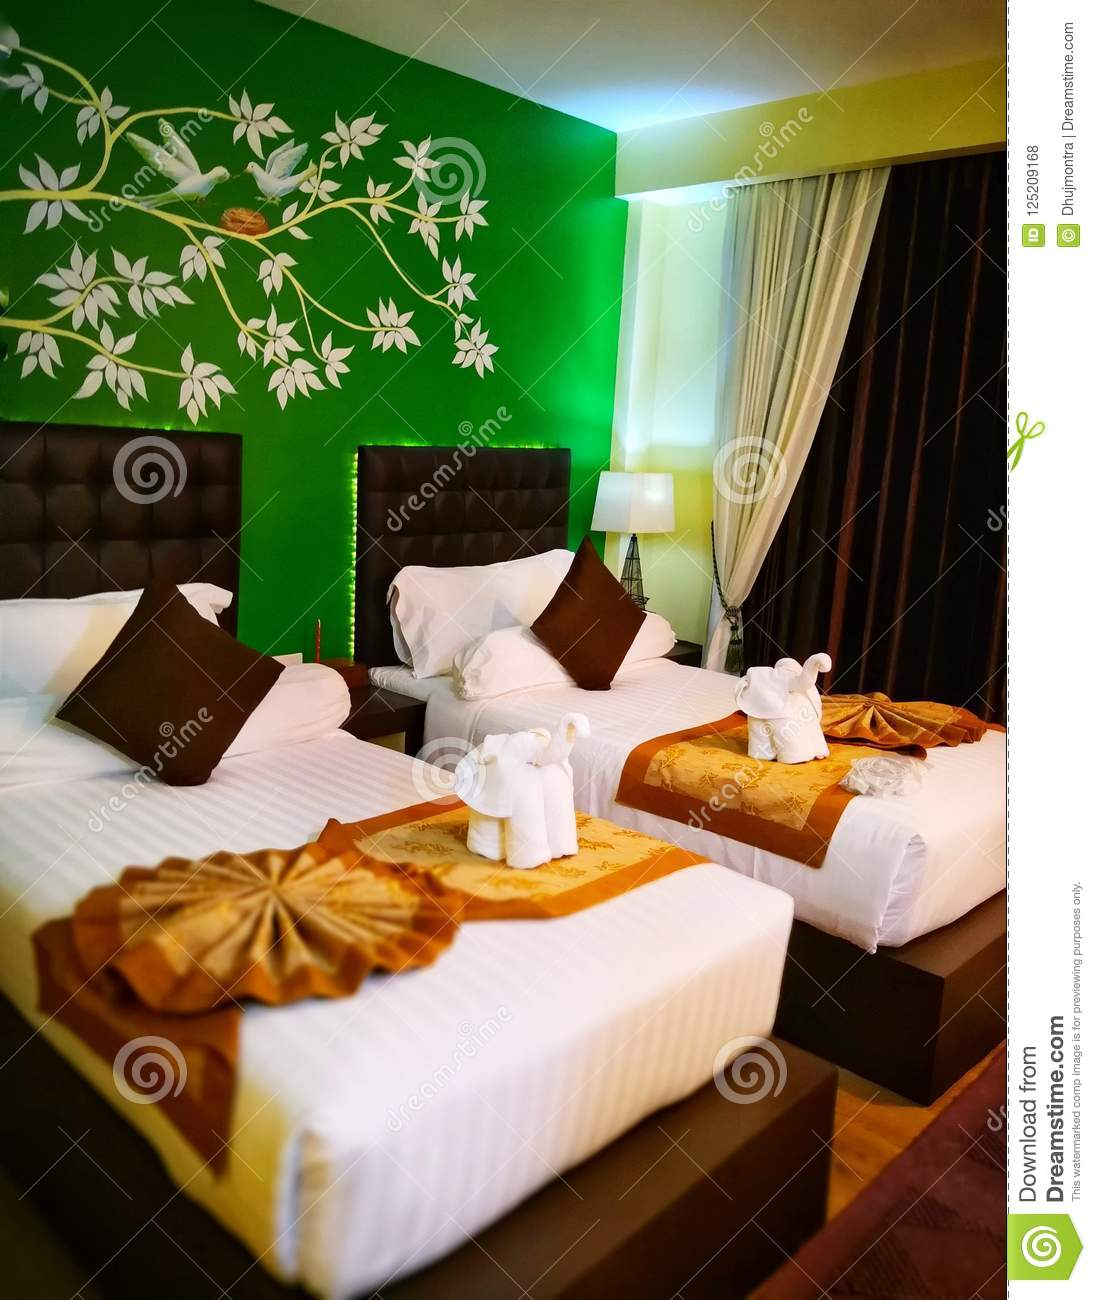 Luxury room with twin beds with colorful and fabric art decoration